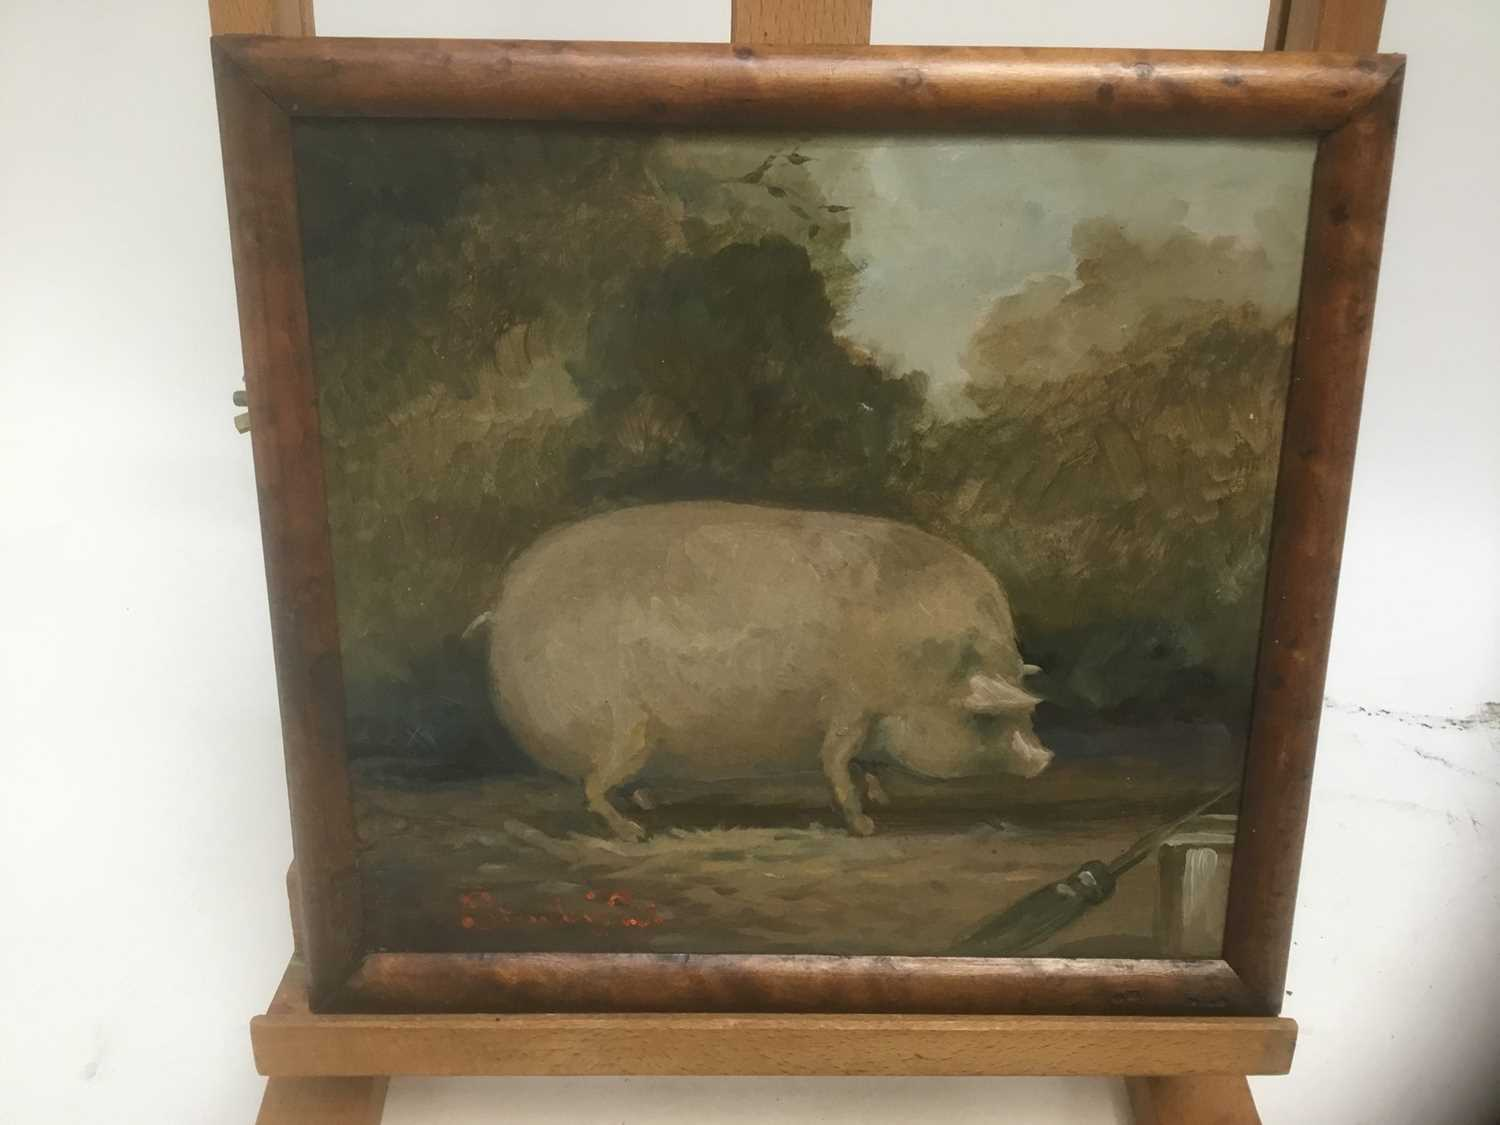 English School, oil on board, Portrait of a pig, indistinctly signed and dated, 20 x 25cm, framed - Image 2 of 7